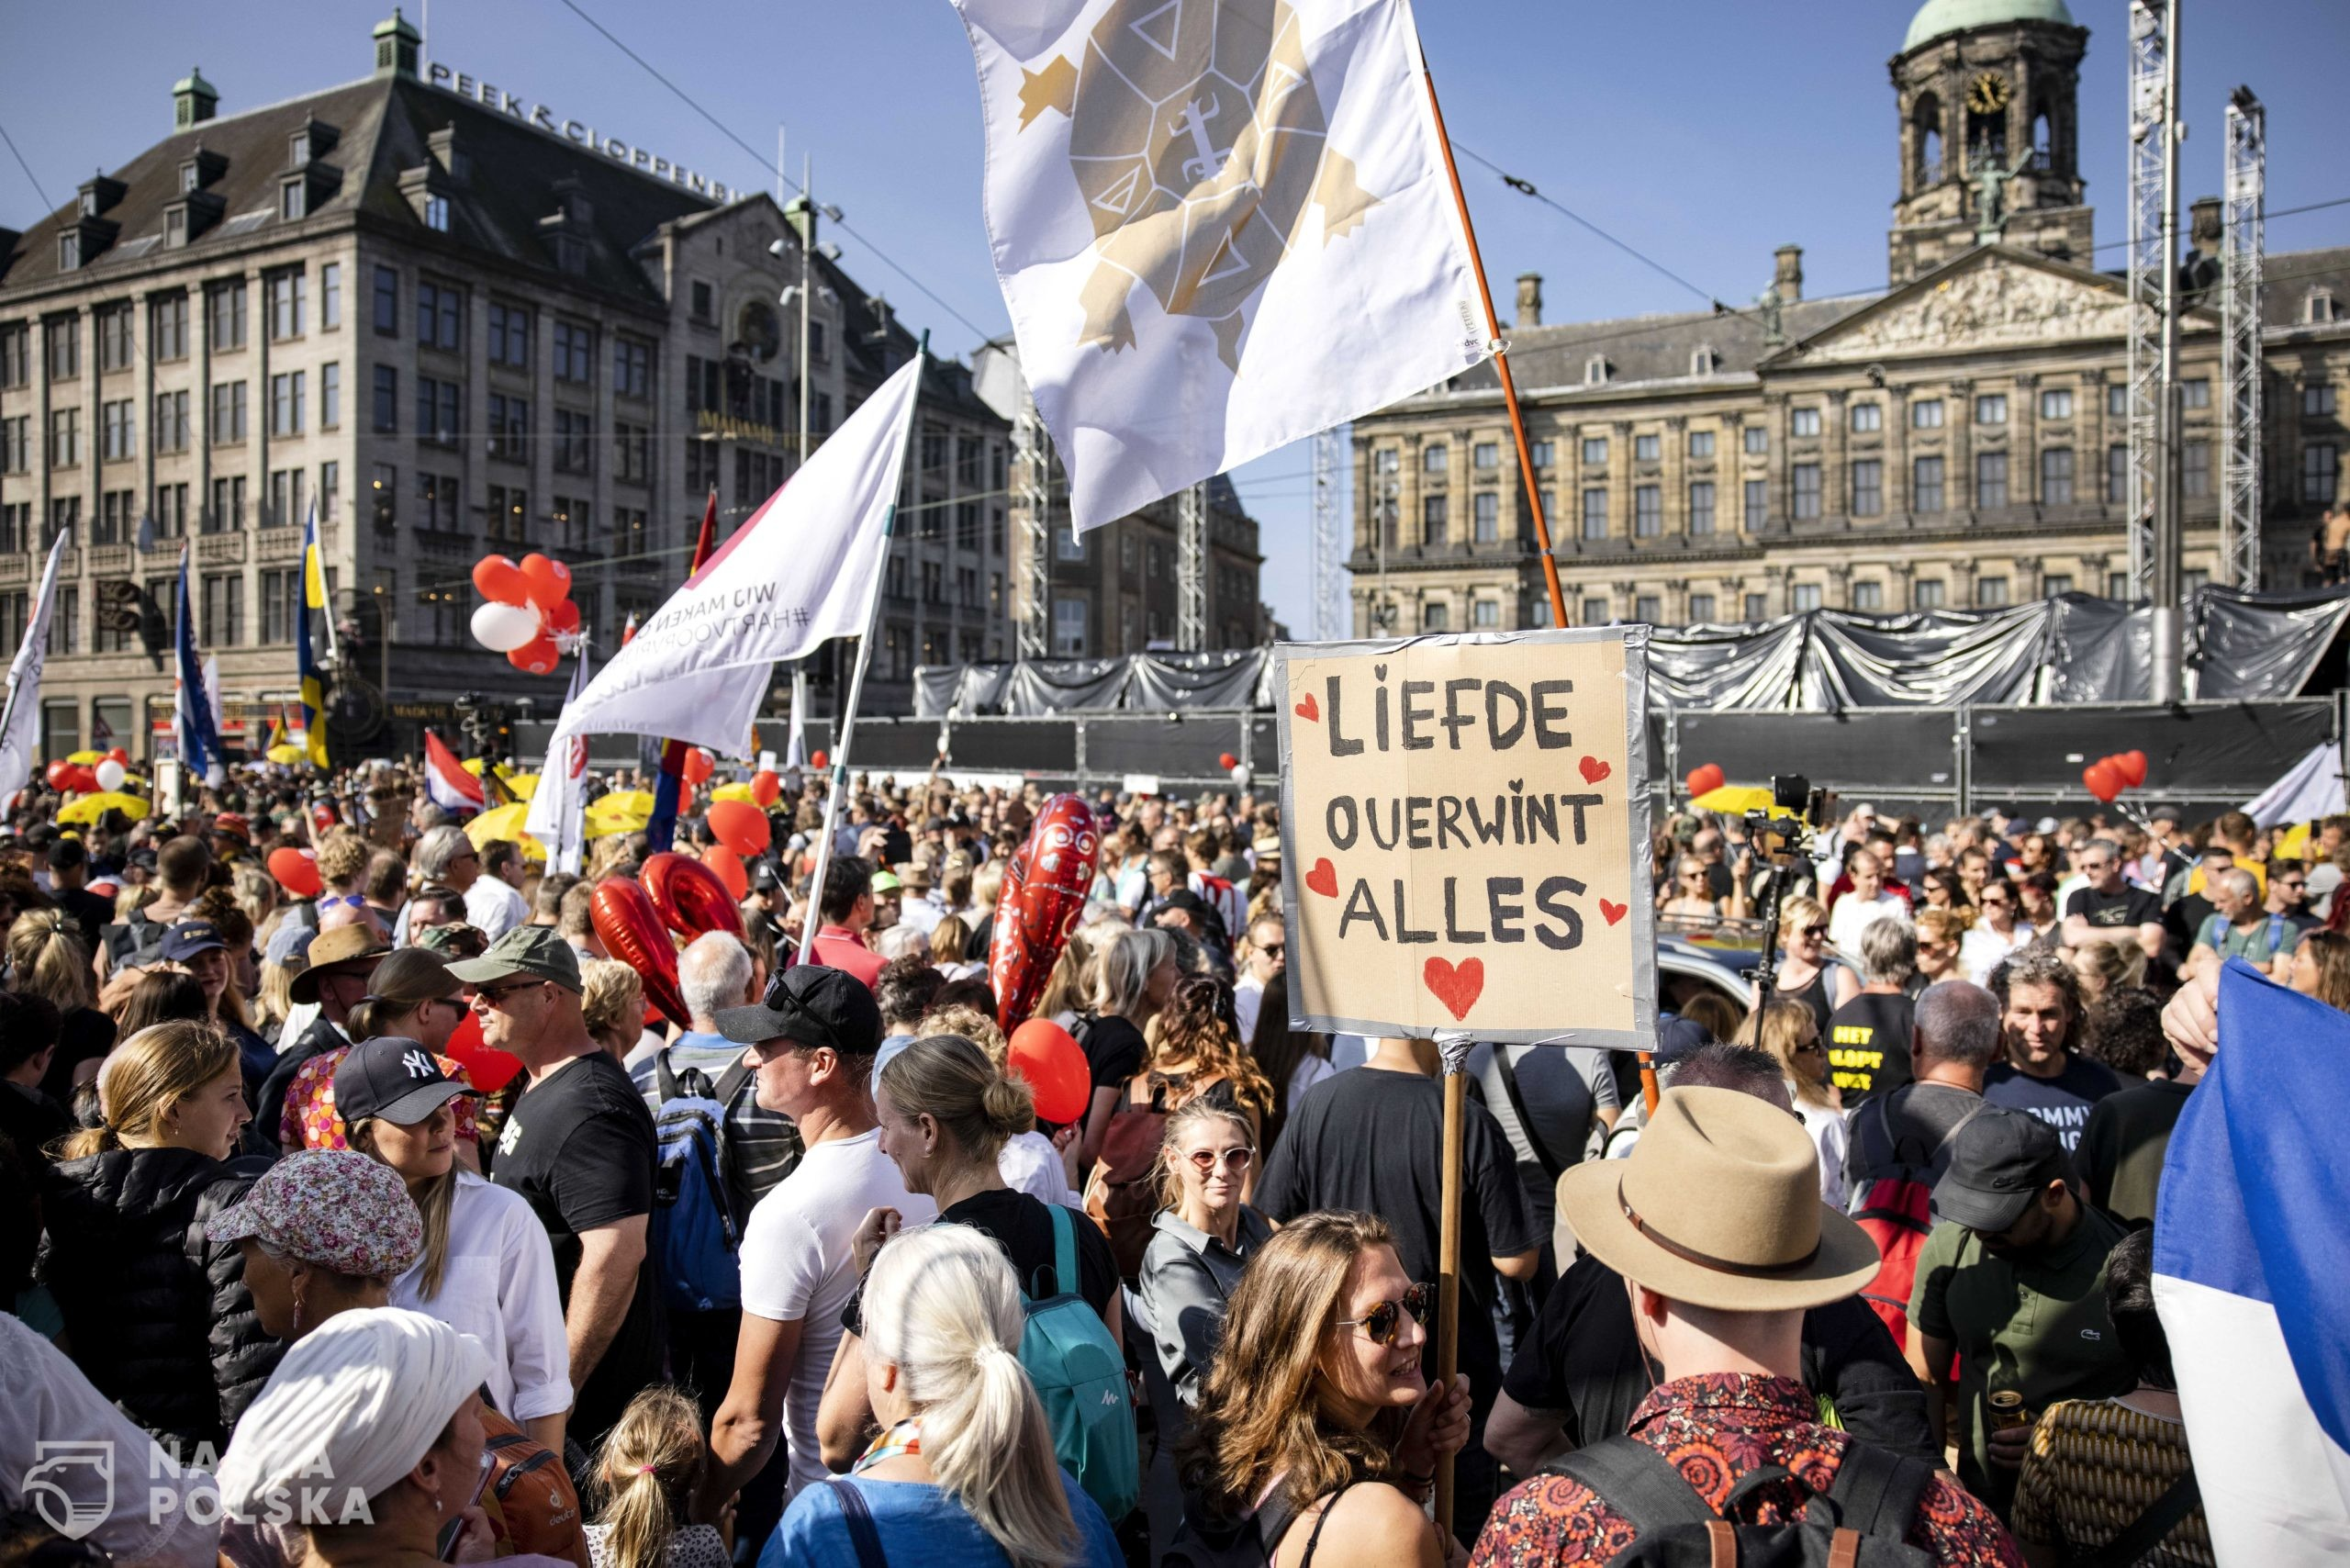 epa09448825 Protesters during the 'Together for the Netherlands' manifestation at Dam Square in Amsterdam, The Netherlands, 05 September 2021. The action is aimed at the freedom-restricting Coronavirus measures.  EPA/Ramon van Flymen  Dostawca: PAP/EPA.